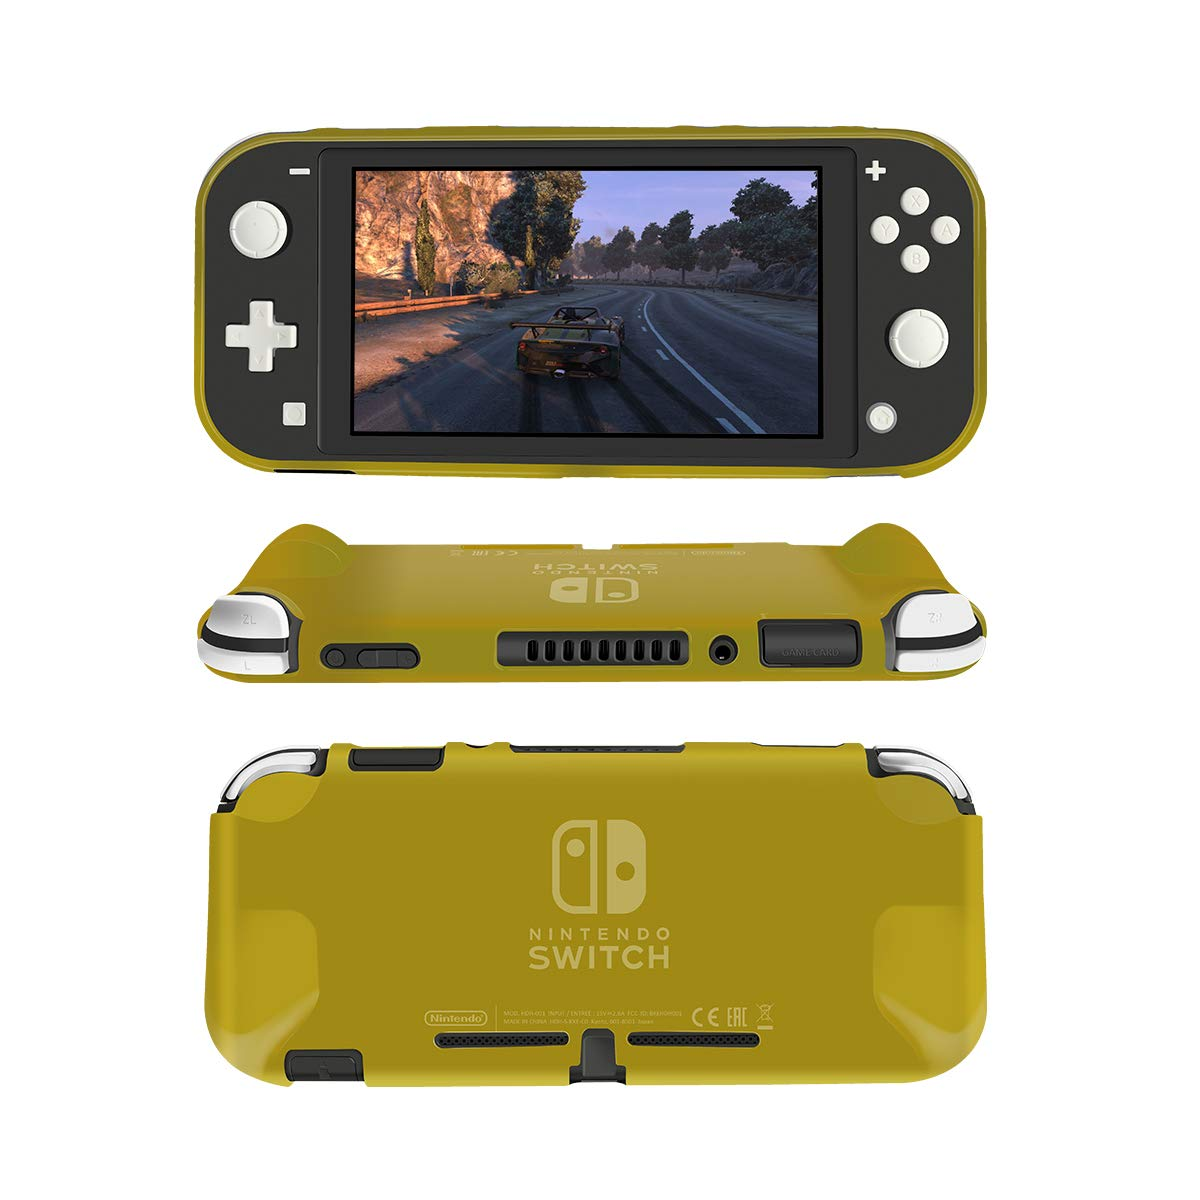 Fits  my switch lite perfectly